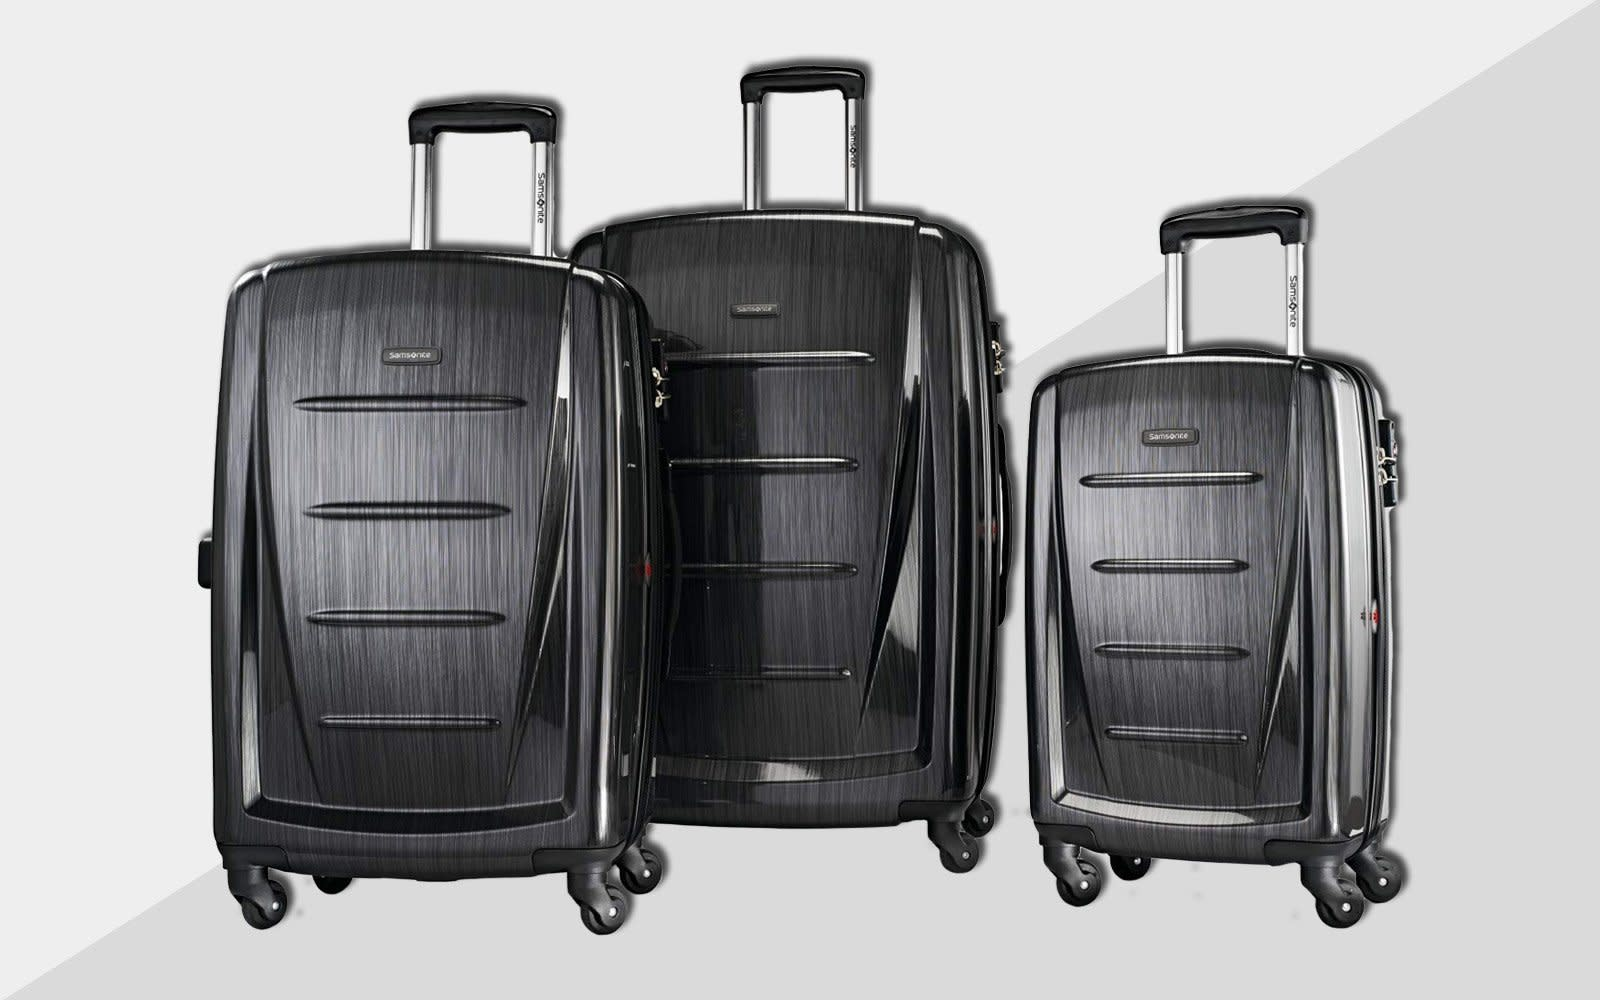 4b662fef4e7b Amazon Prime Day 2019: Best Luggage and Weekend Bag Deals